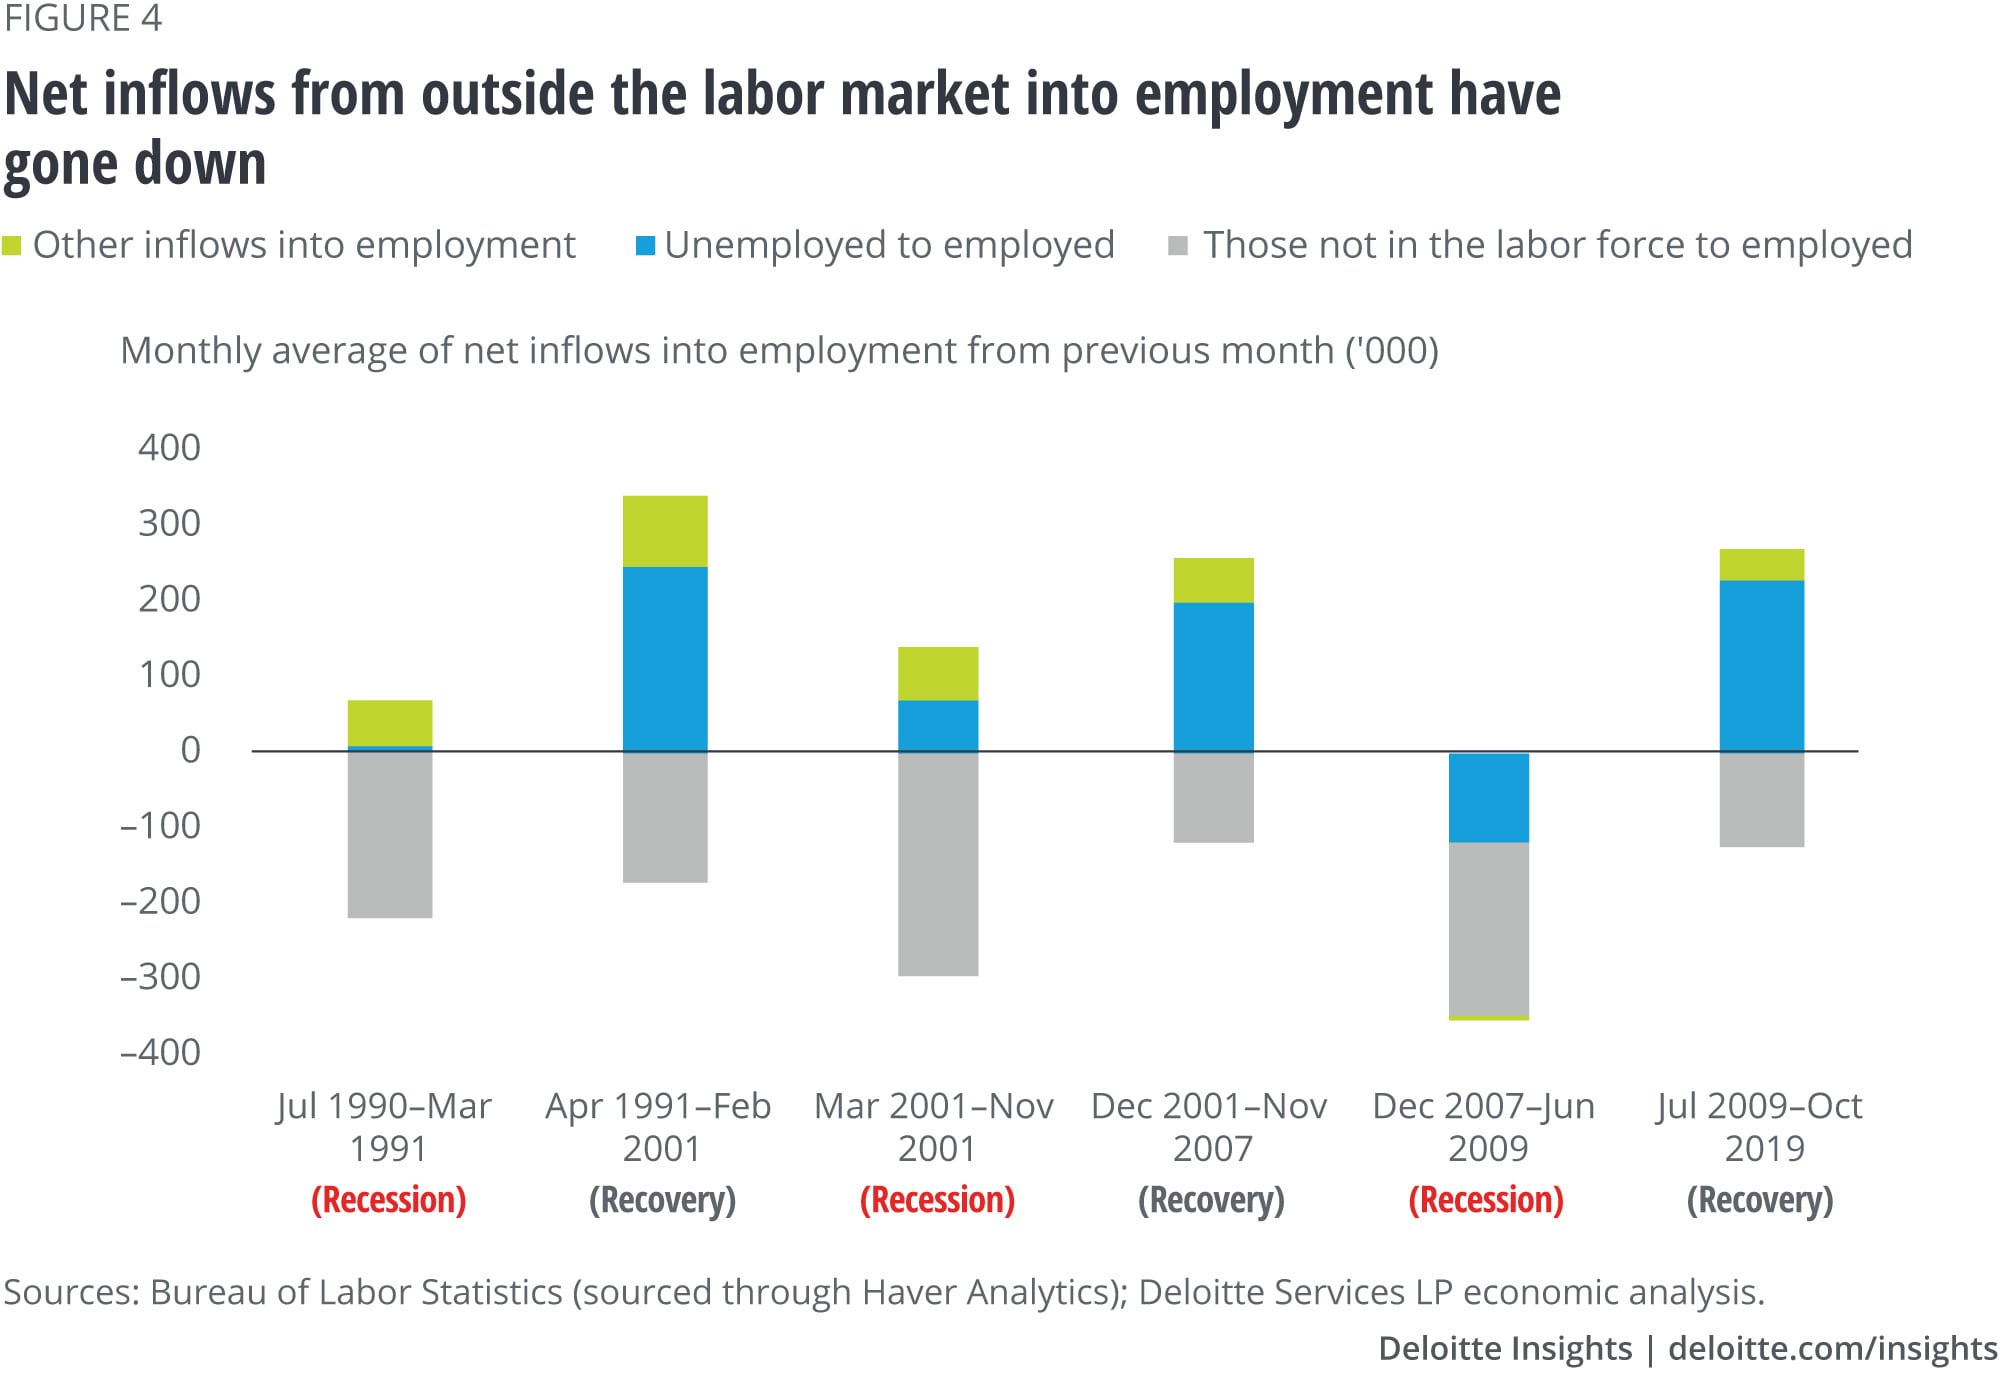 Net inflows from outside the labor market into employment has gone down